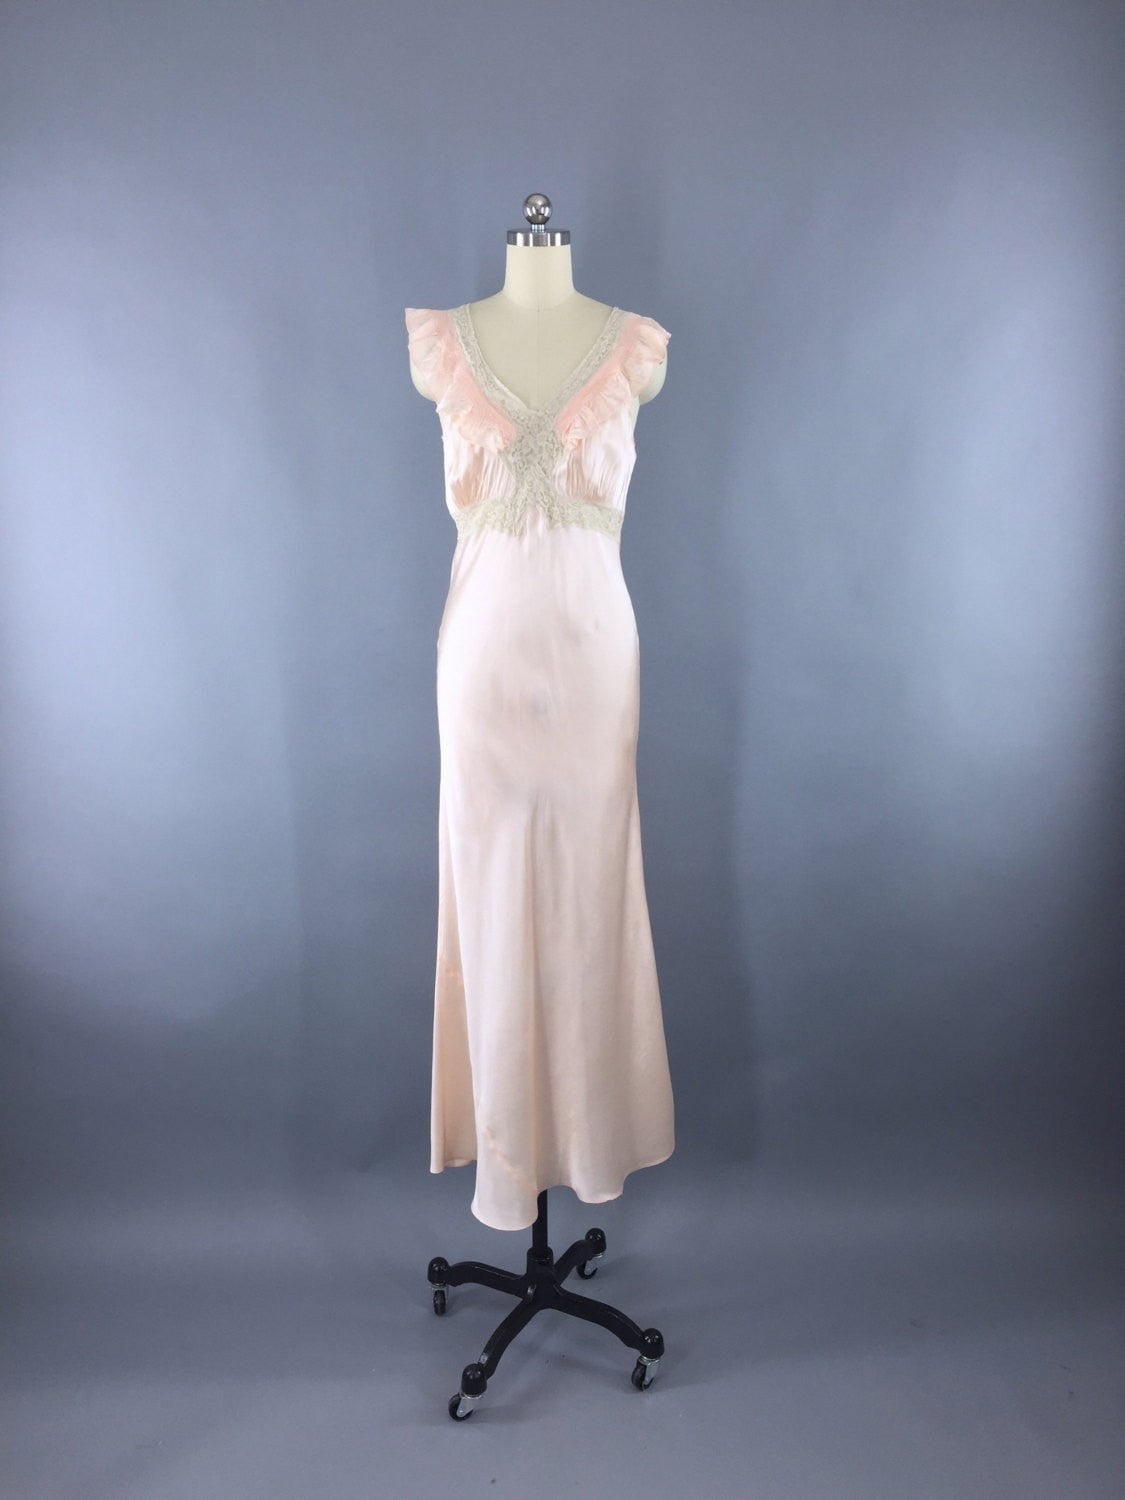 Vintage 1930s Bias Cut Peach Satin Nightgown Lingerie ThisBlueBird